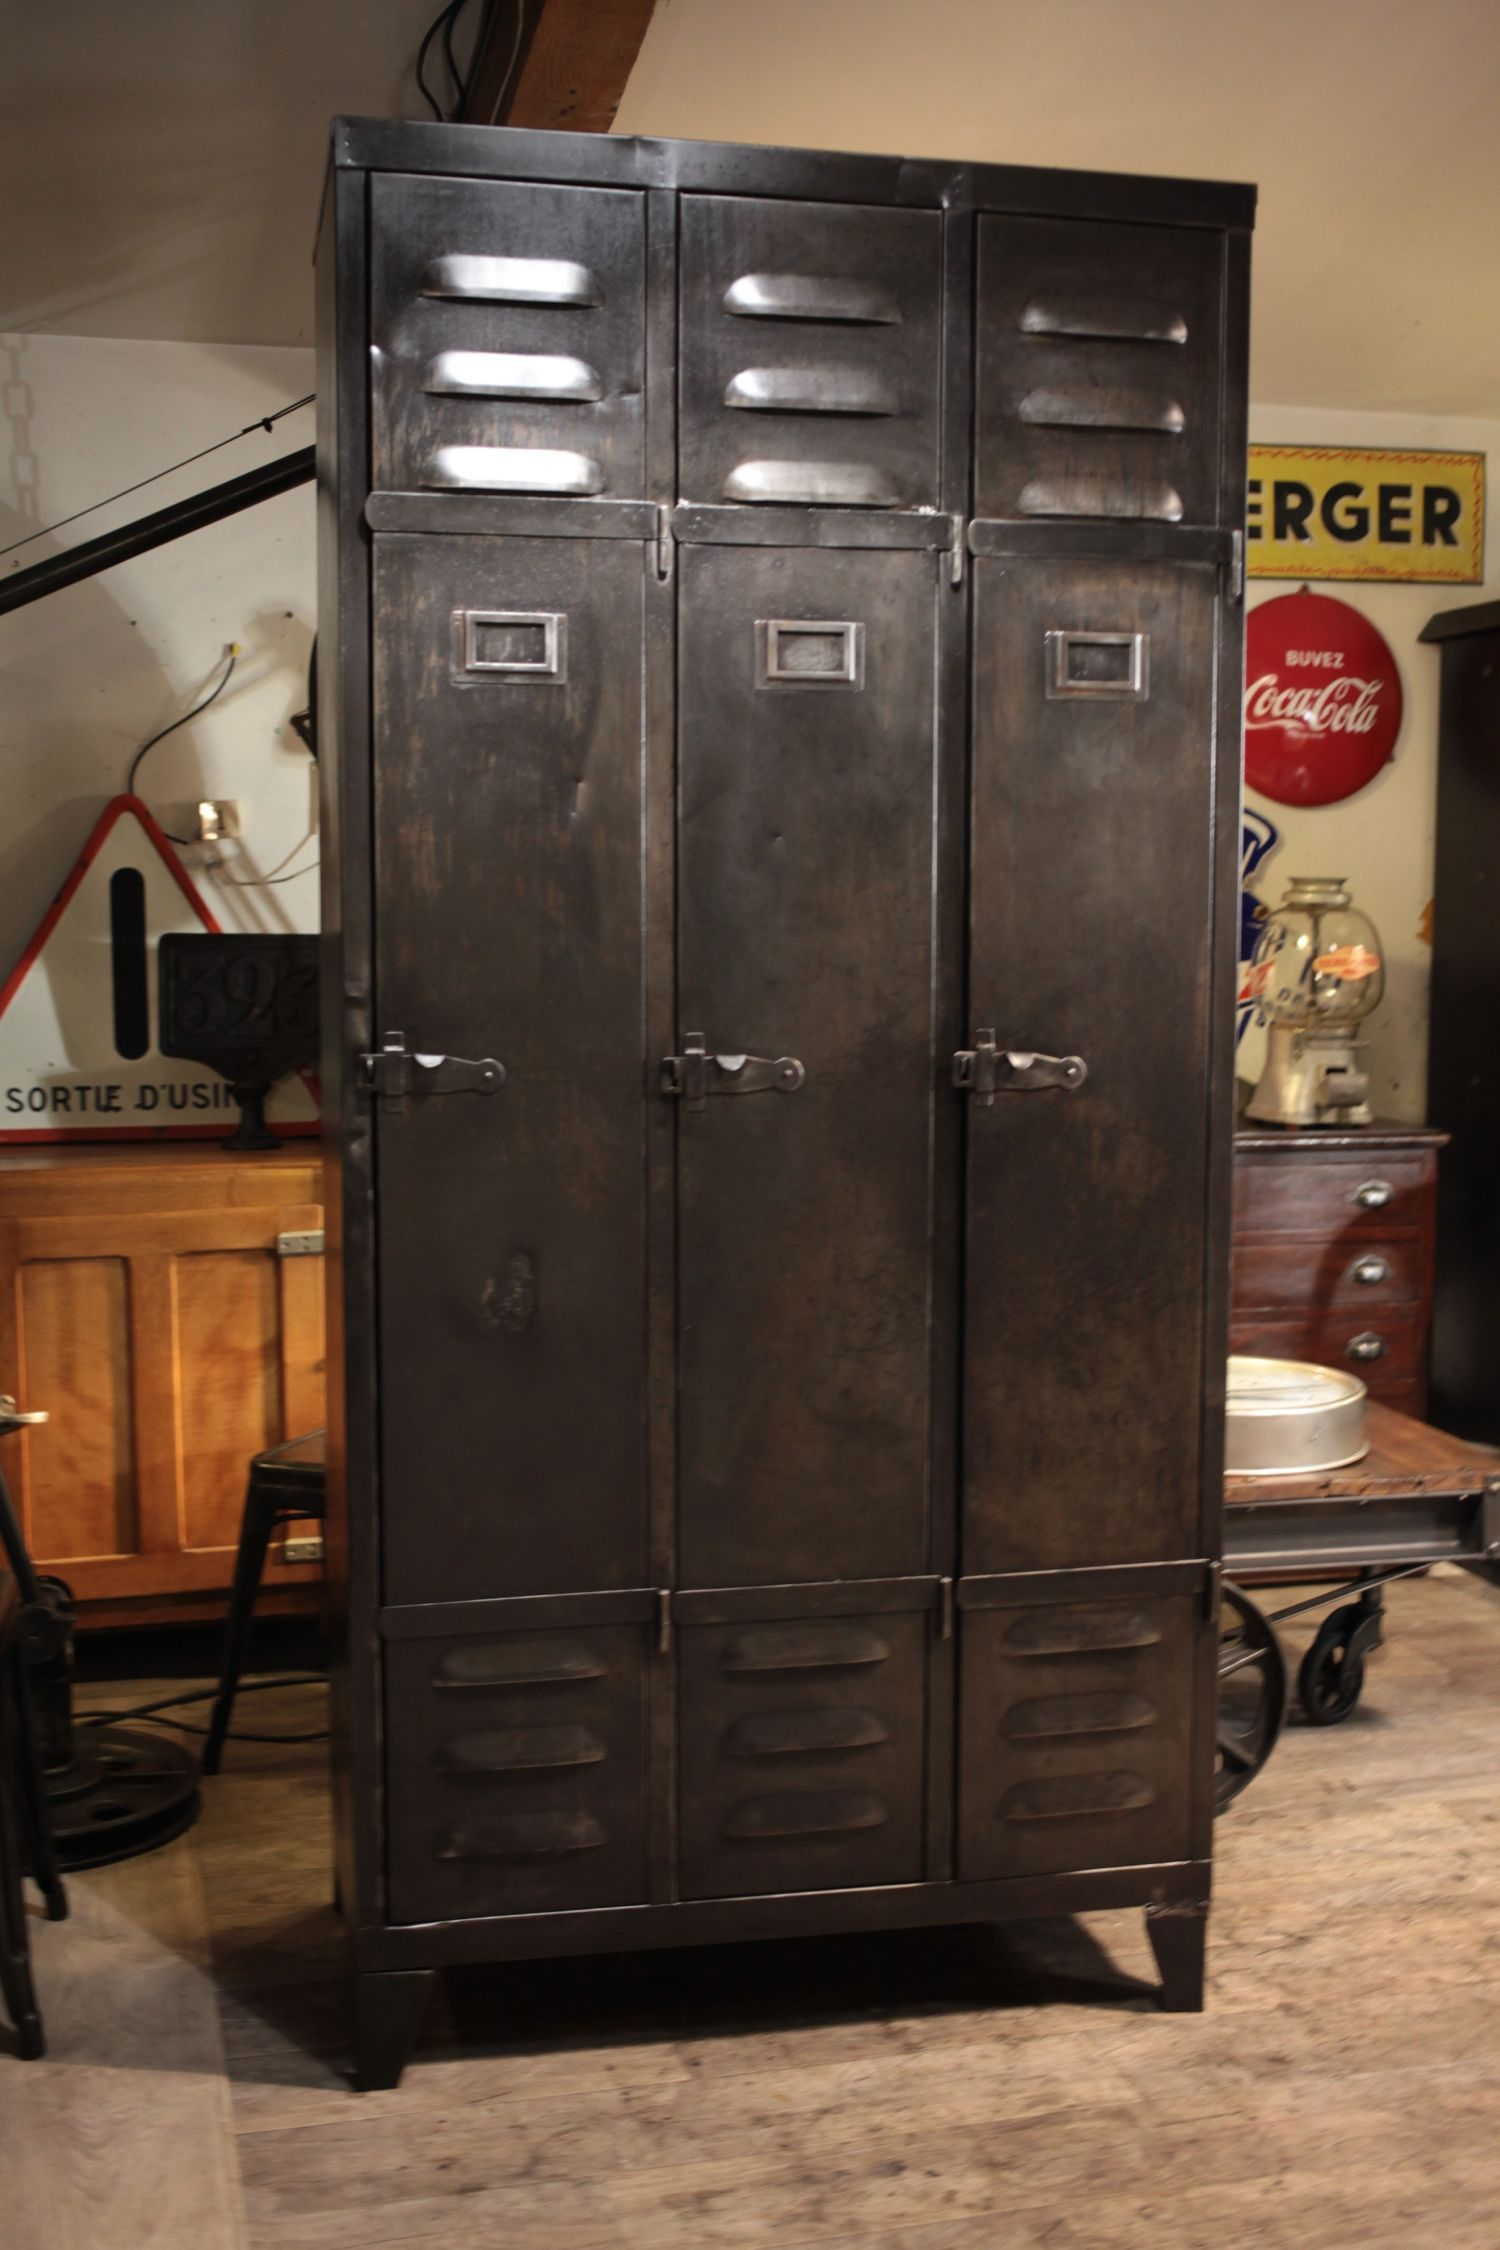 Mobilier Industriel Loft Meuble Industriel Ancien Deco Loft Metal Art And Design